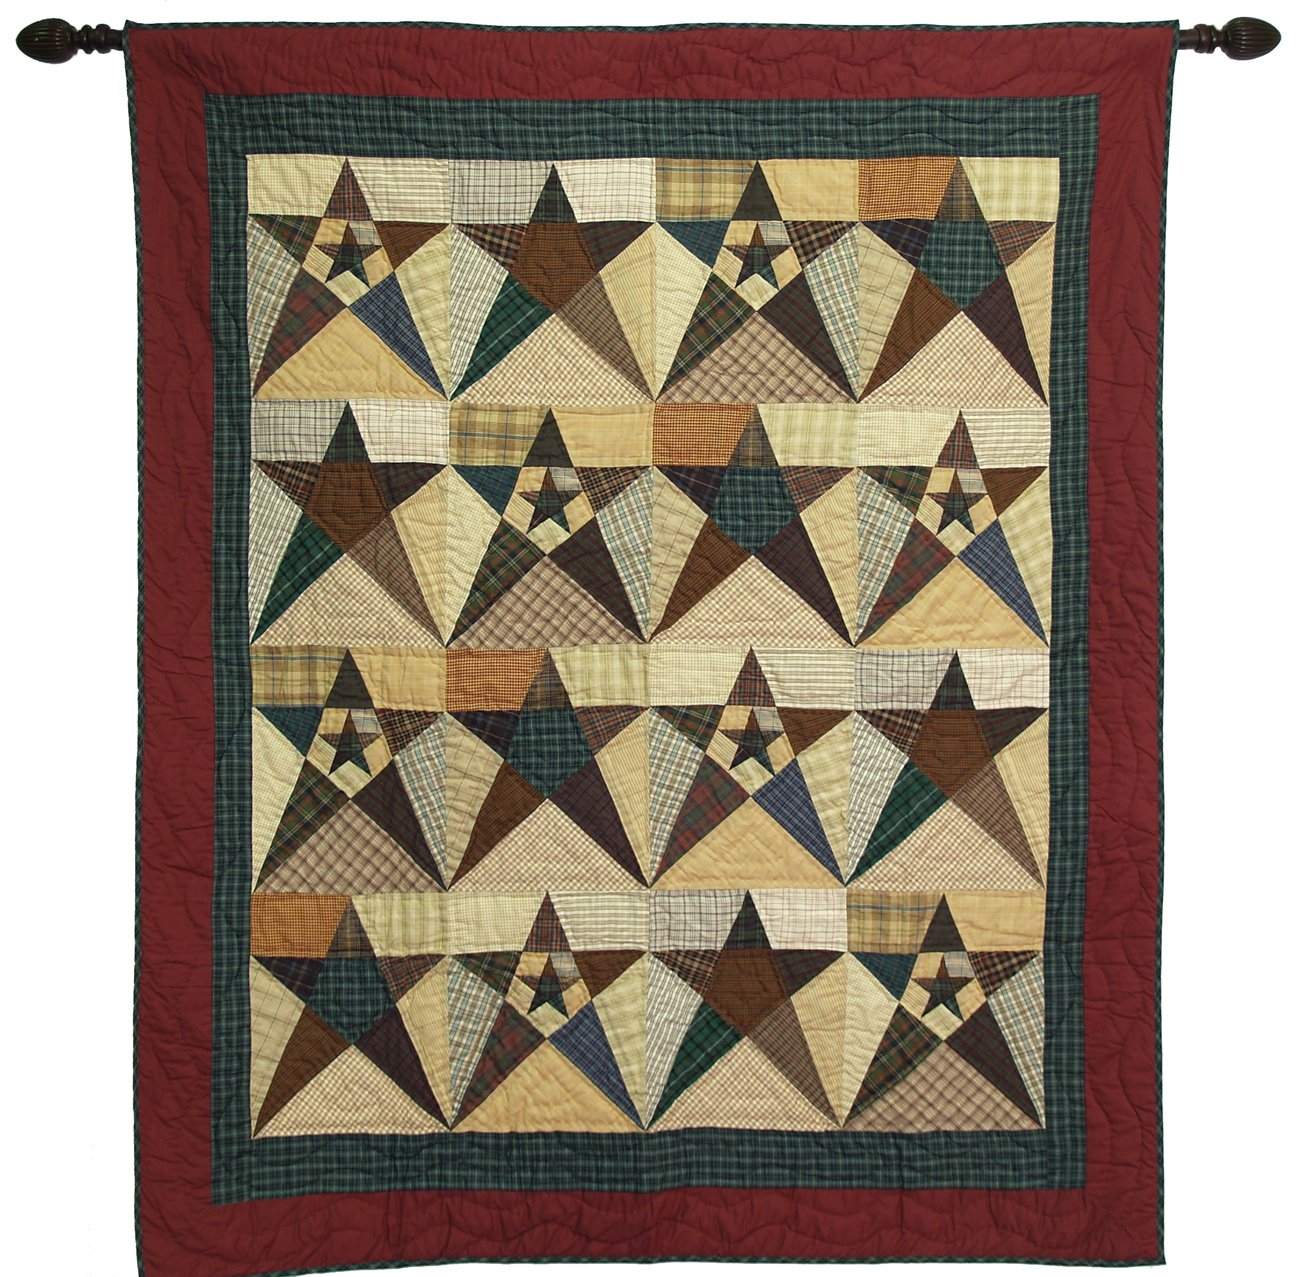 Primitive Star Large Wall Hanging Throw Quilt 50 Inches by 60 Inches 100% Cotton Handmade Hand Quilted Heirloom Quality